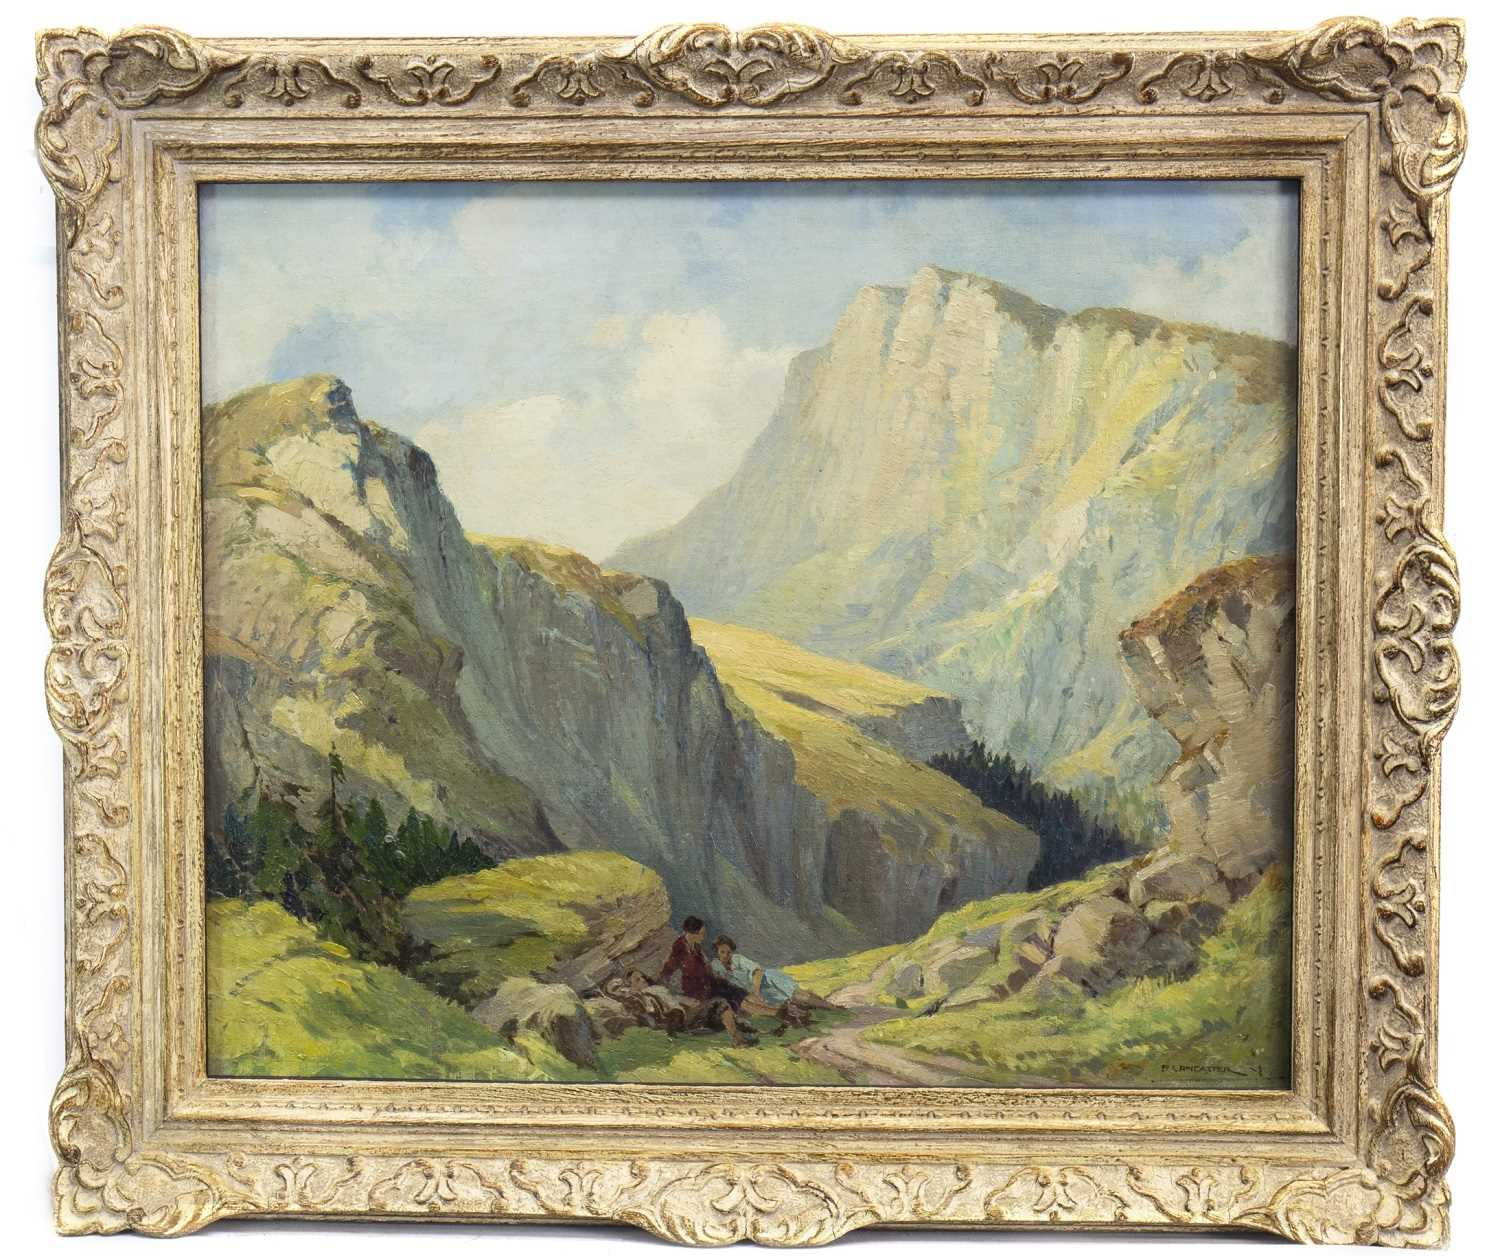 Lot 475-SWISS MOUNTAIN PASS WITH FIGURES RESTING, AN OIL BY PERCY LANCASTER